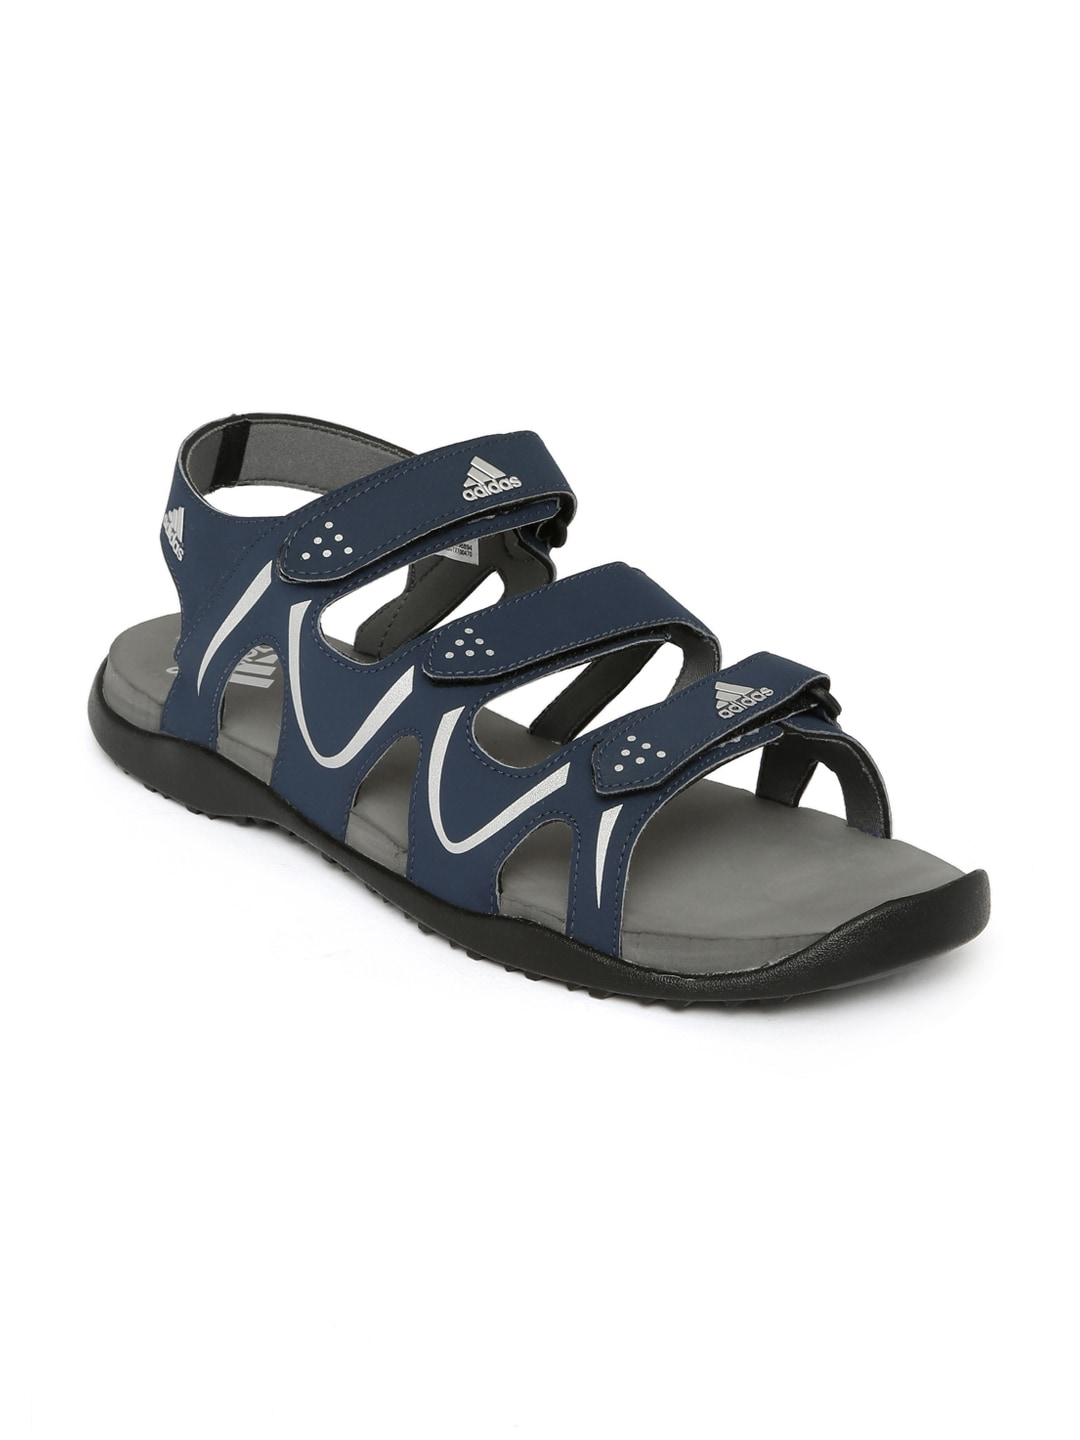 76df7225175292 Buy adidas sandals for men online   OFF40% Discounted